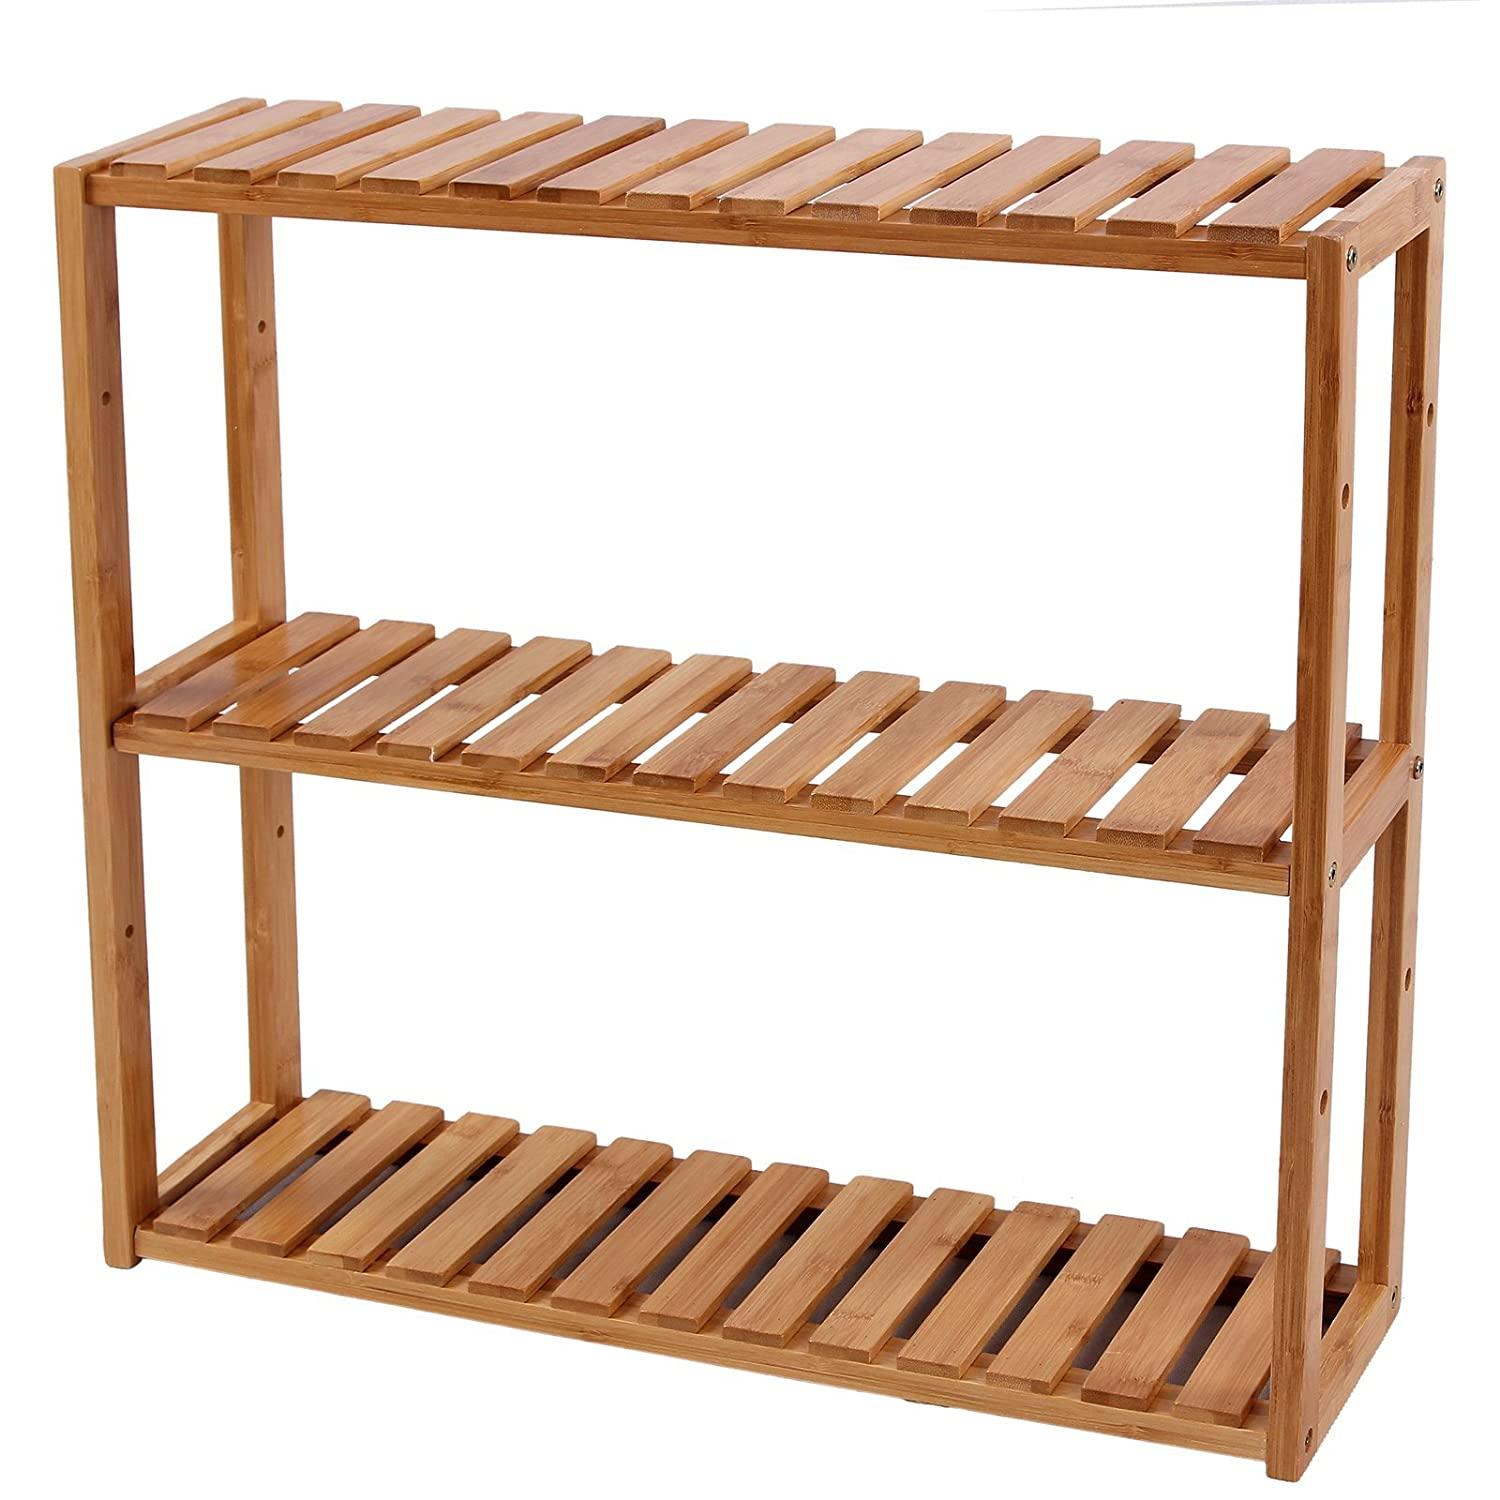 songmics adjustable bamboo rack bathroom kitchen living room holder 3tier utility storage shelf